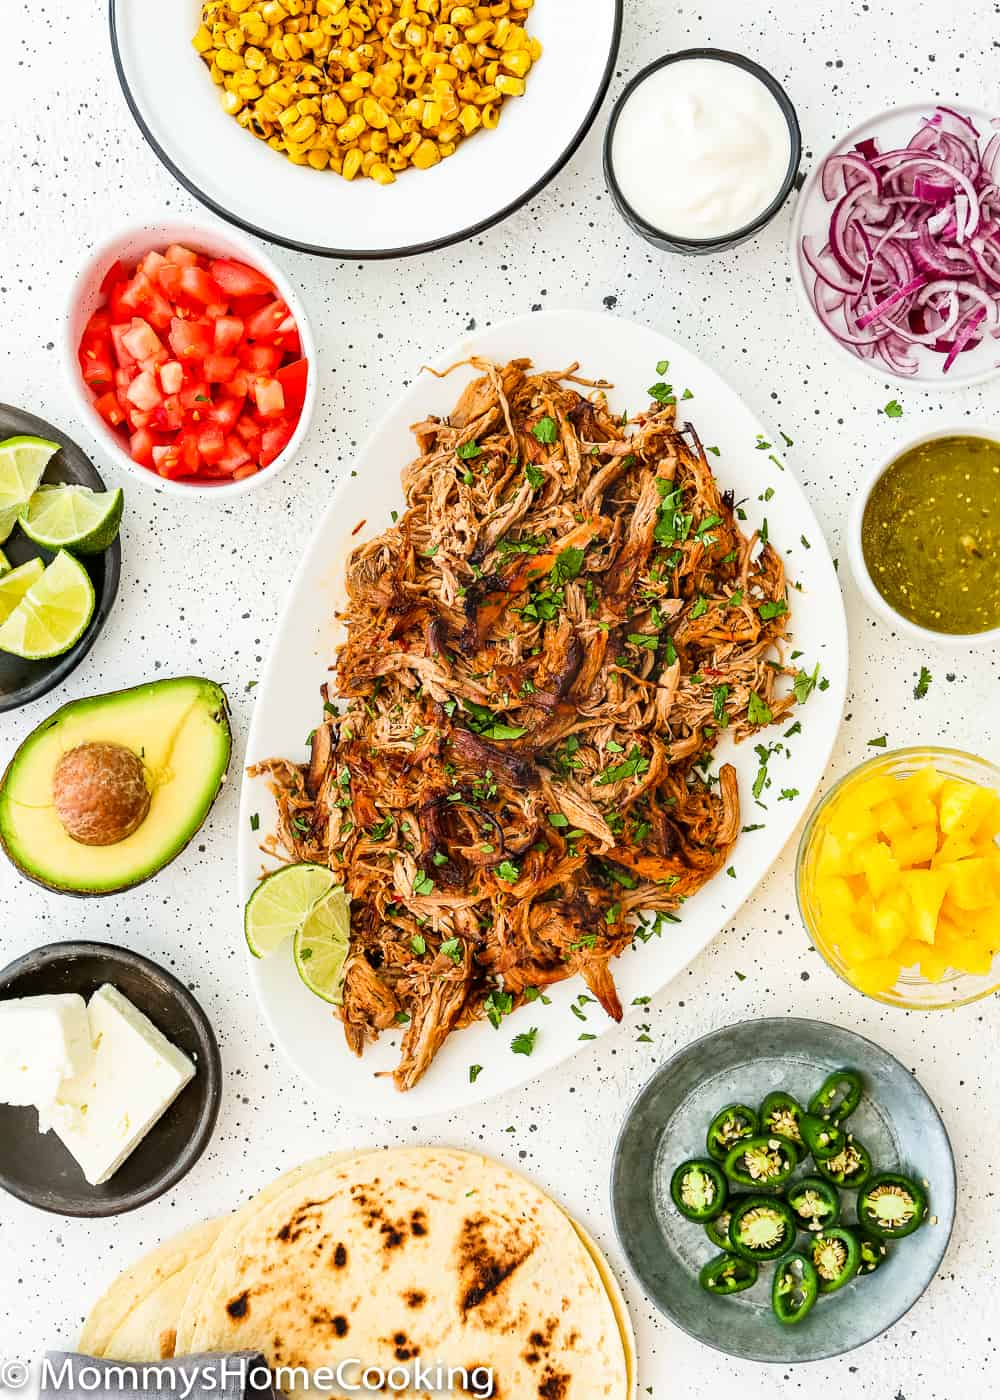 Slow Cooker Chipotle Carnitas on a serving platter with all the ingredients for a taco bar.